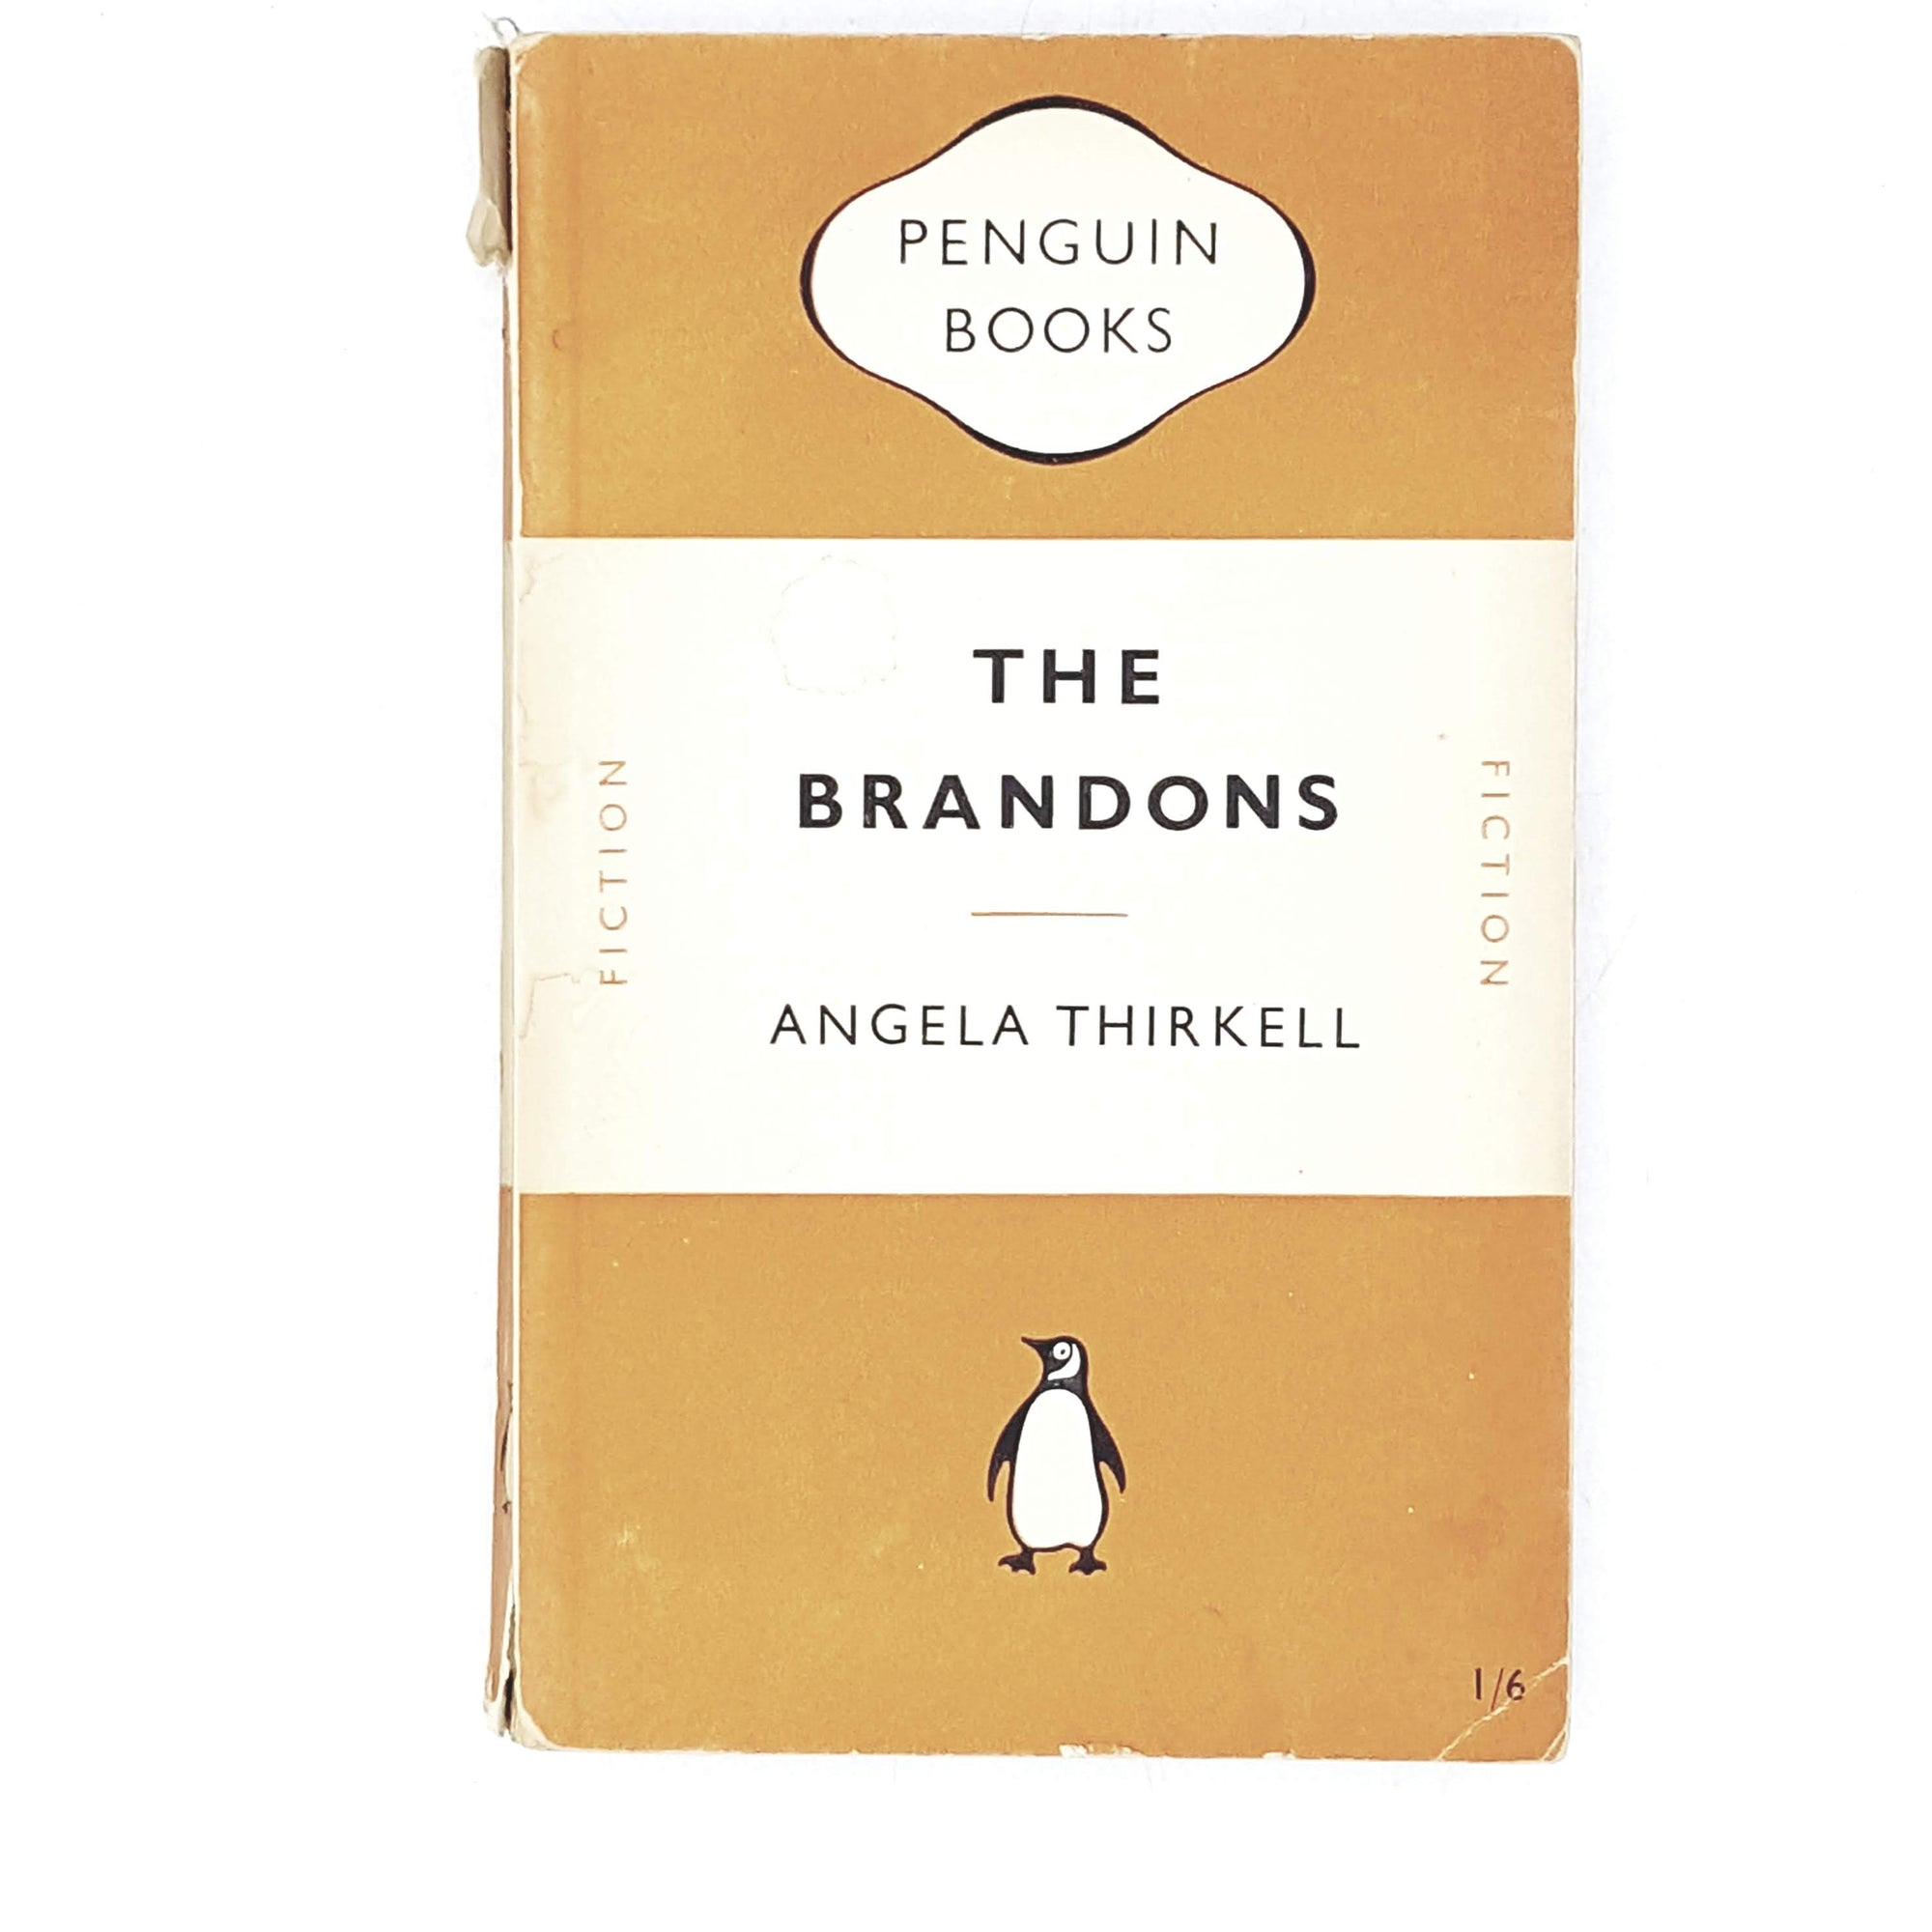 Vintage Penguin The Brandons by Angela Thirkell 1950